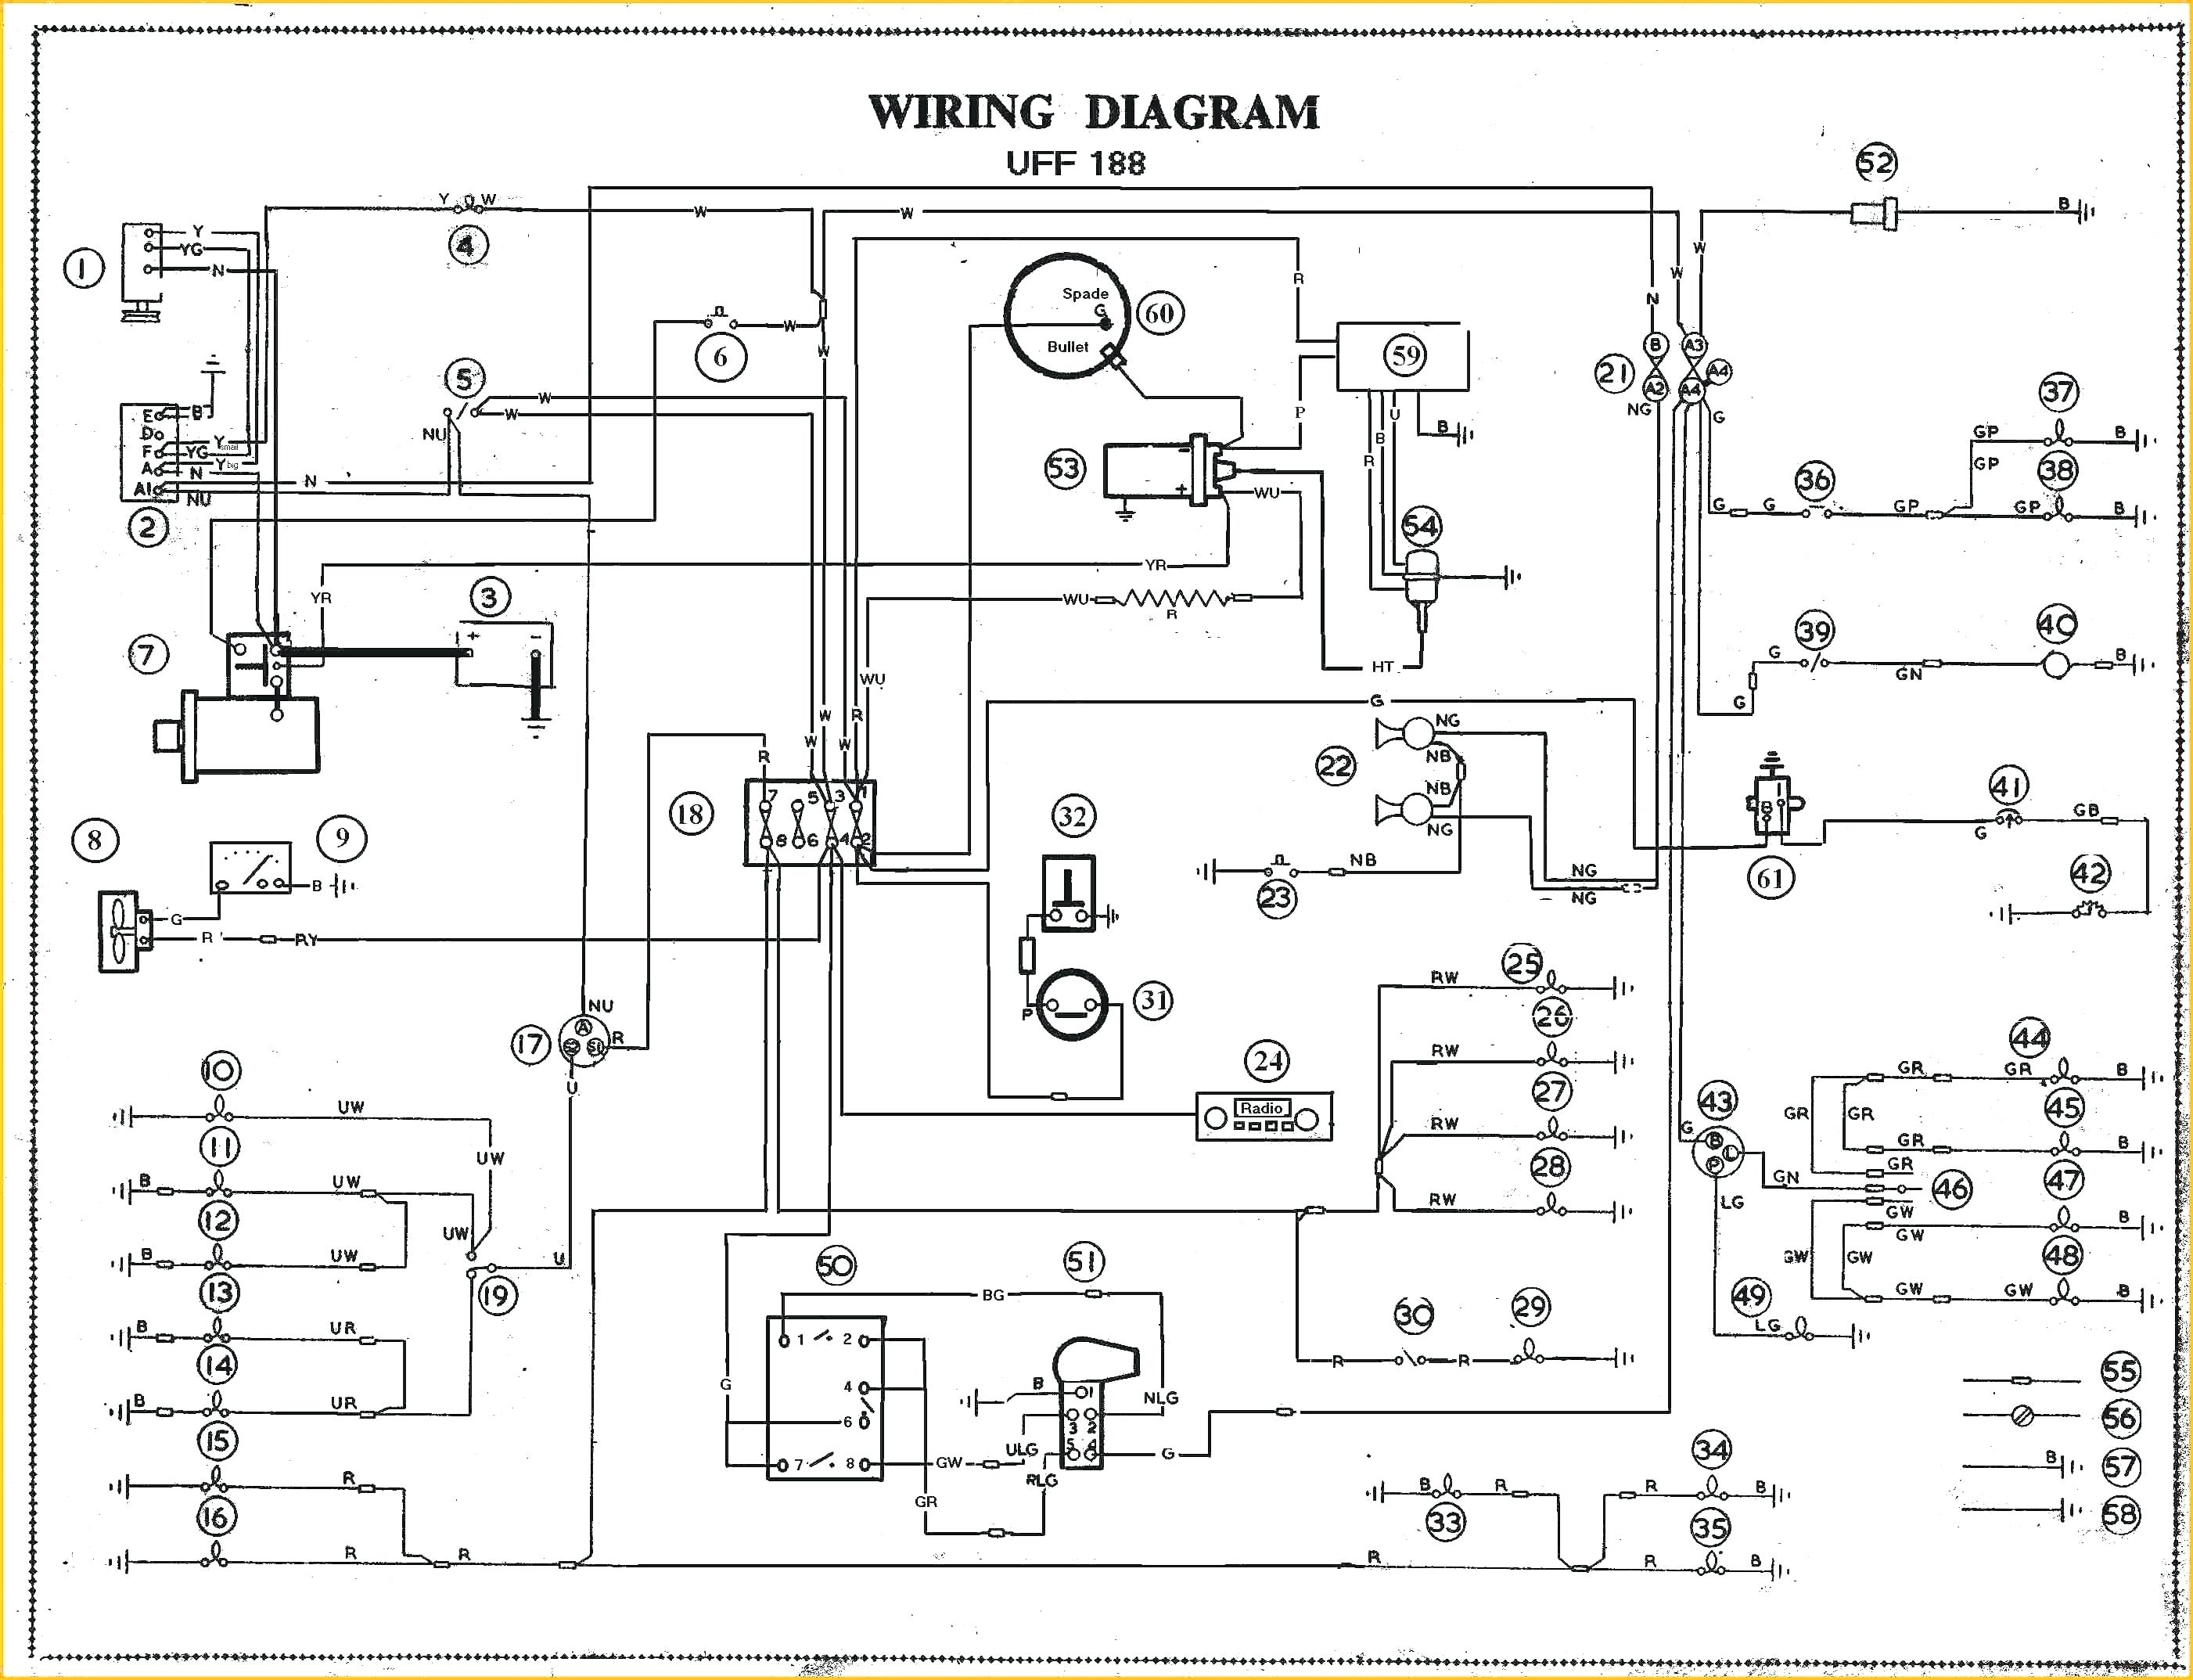 hvac wiring diagram pdf Download-Basic Hvac Wiring Diagrams Schematics Throughout Air Conditioner Diagram Pdf 9-i